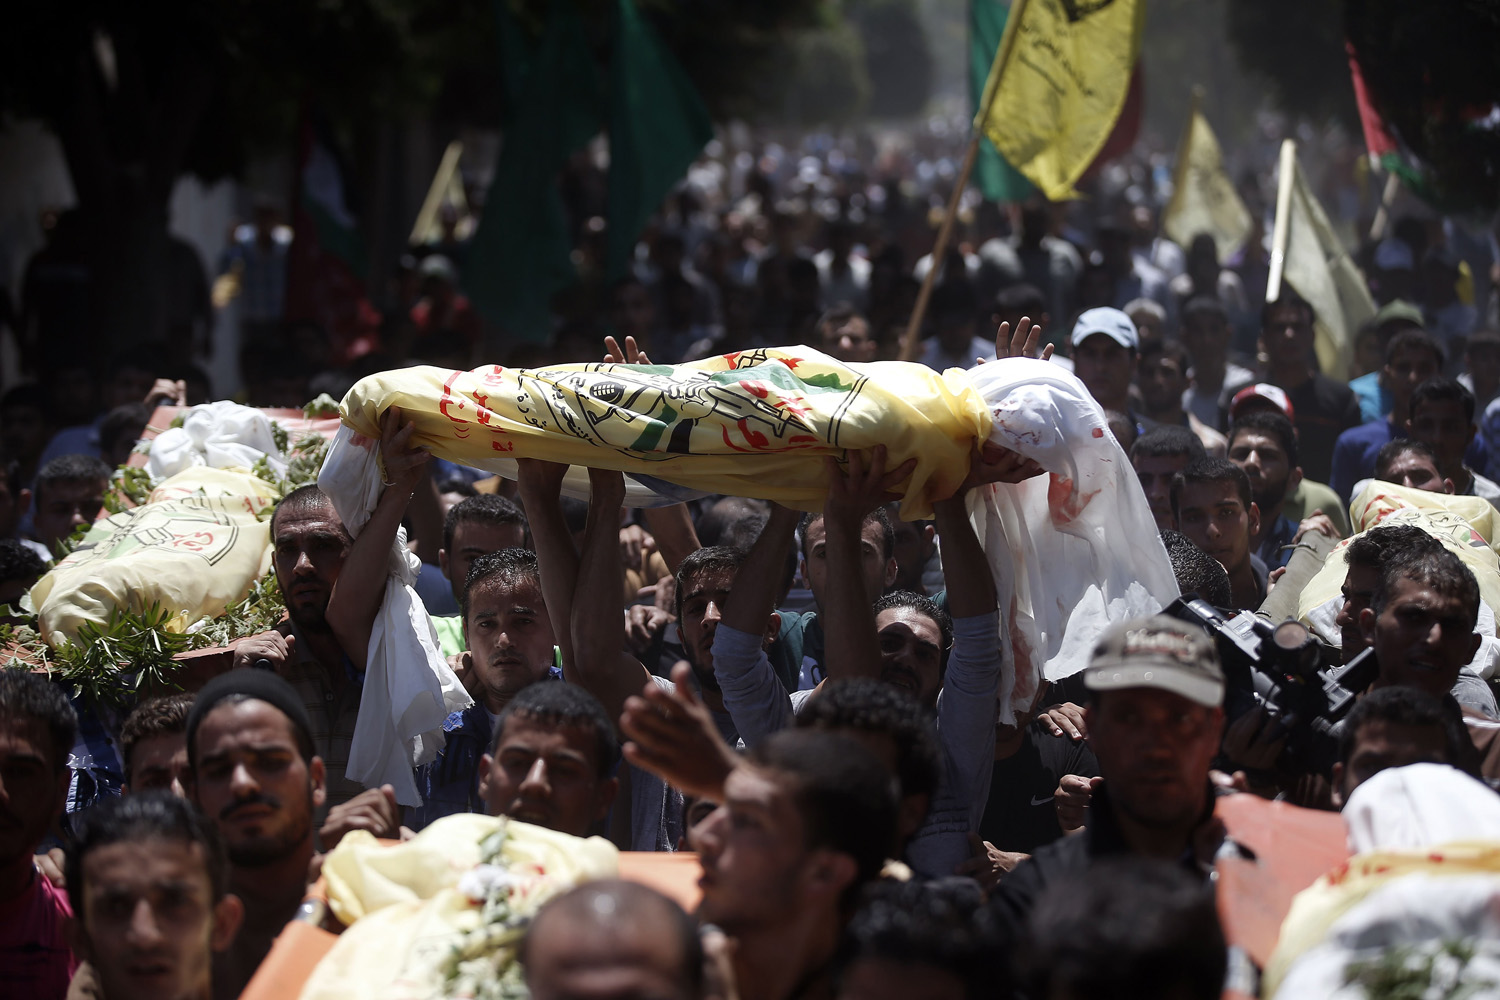 Jul. 9, 2014. Relatives and friends of the al-Kaware family carry the 7 bodies to the mosque during their funeral in Khan Yunis, in the Gaza Strip. The father, a member of the Fatah movement, and his 6 sons were all killed the day before in an Israeli air strike that targeted their home.